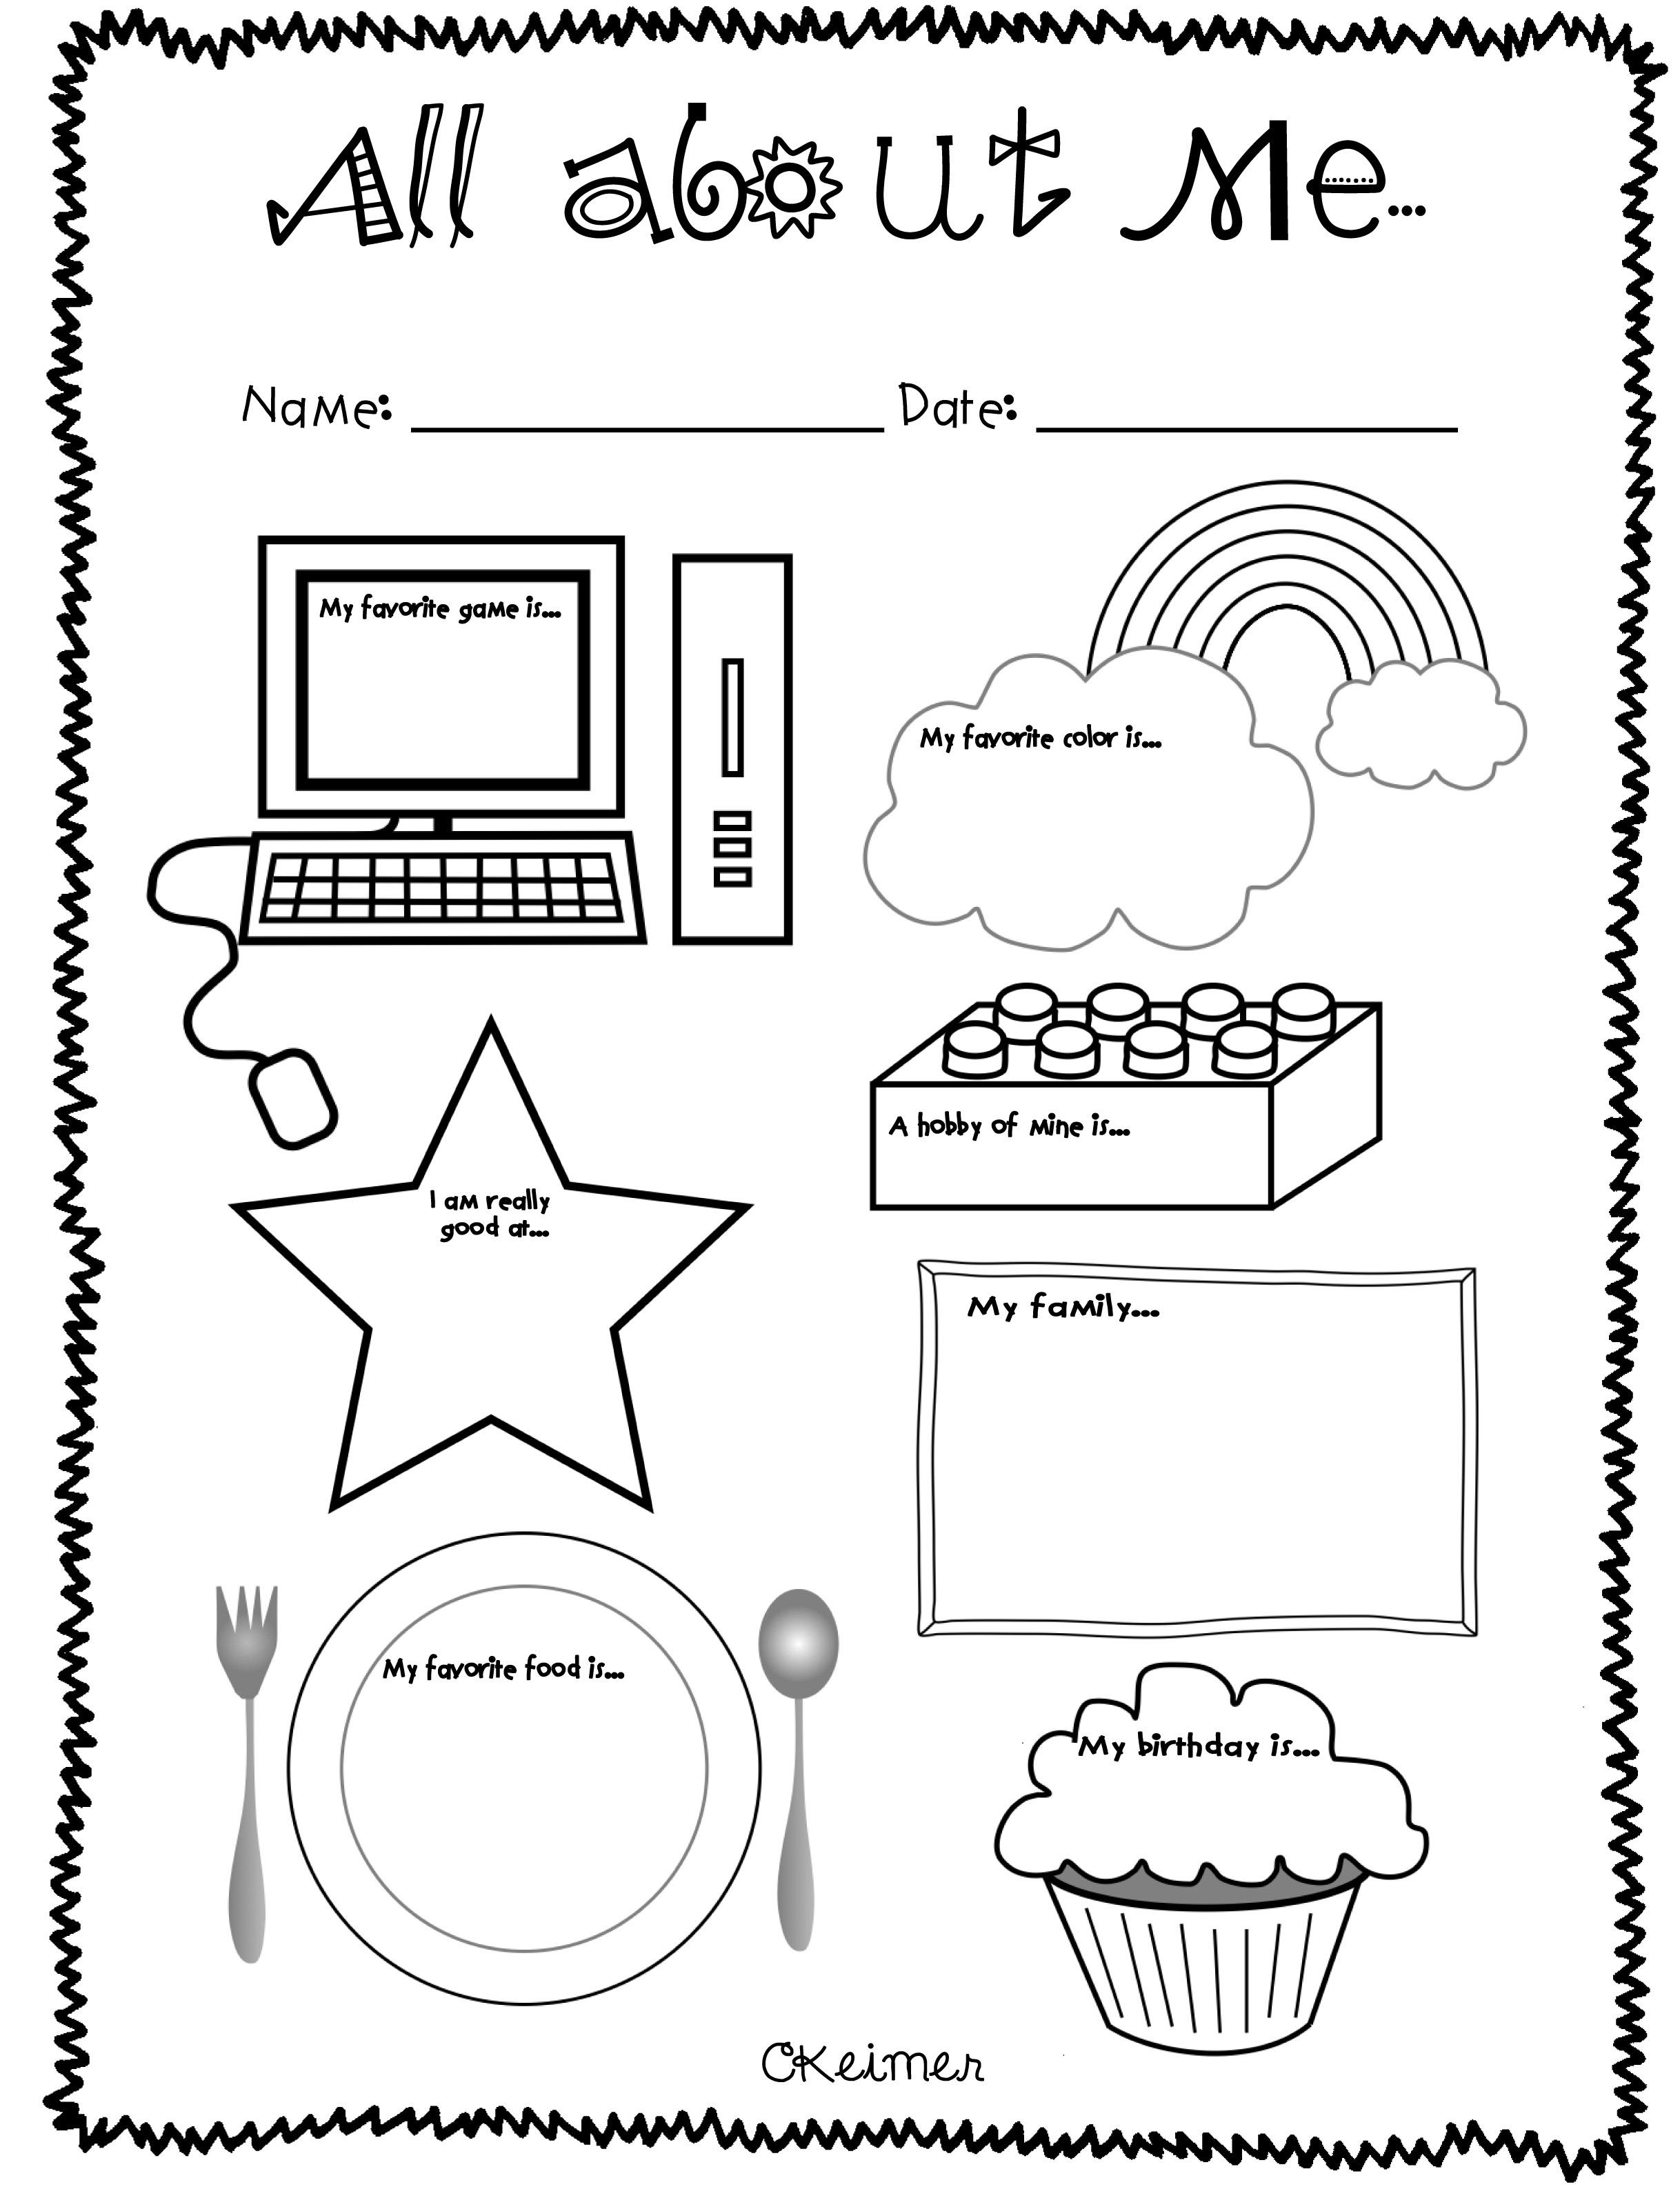 All About Me Activities A Multiple Intelligences